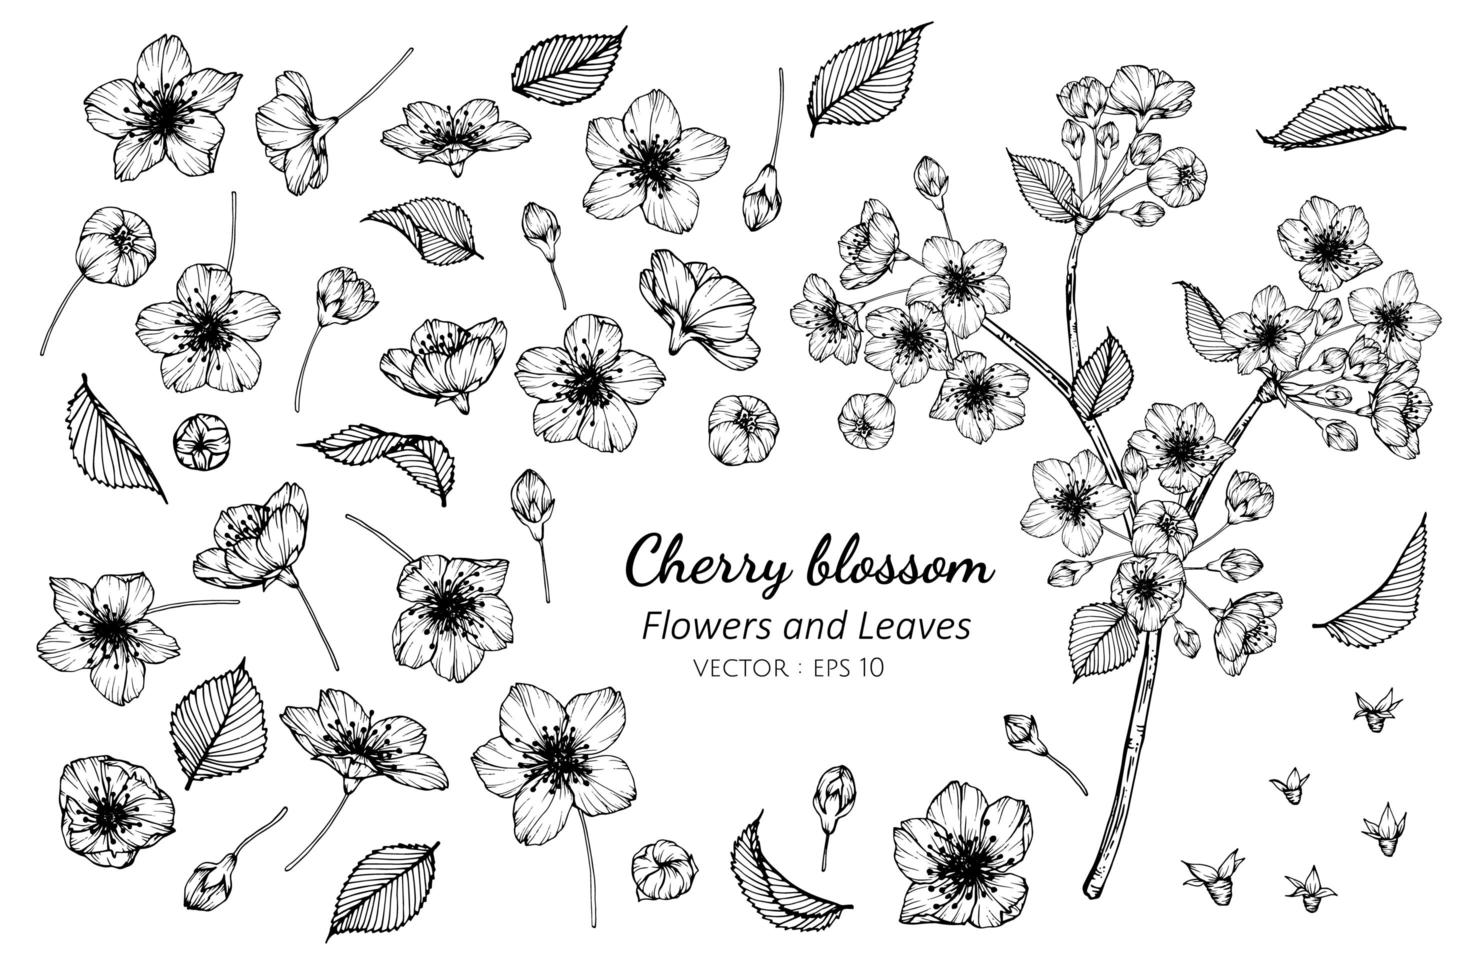 Collection of Cherry Blossom Flowers and Leaves vector